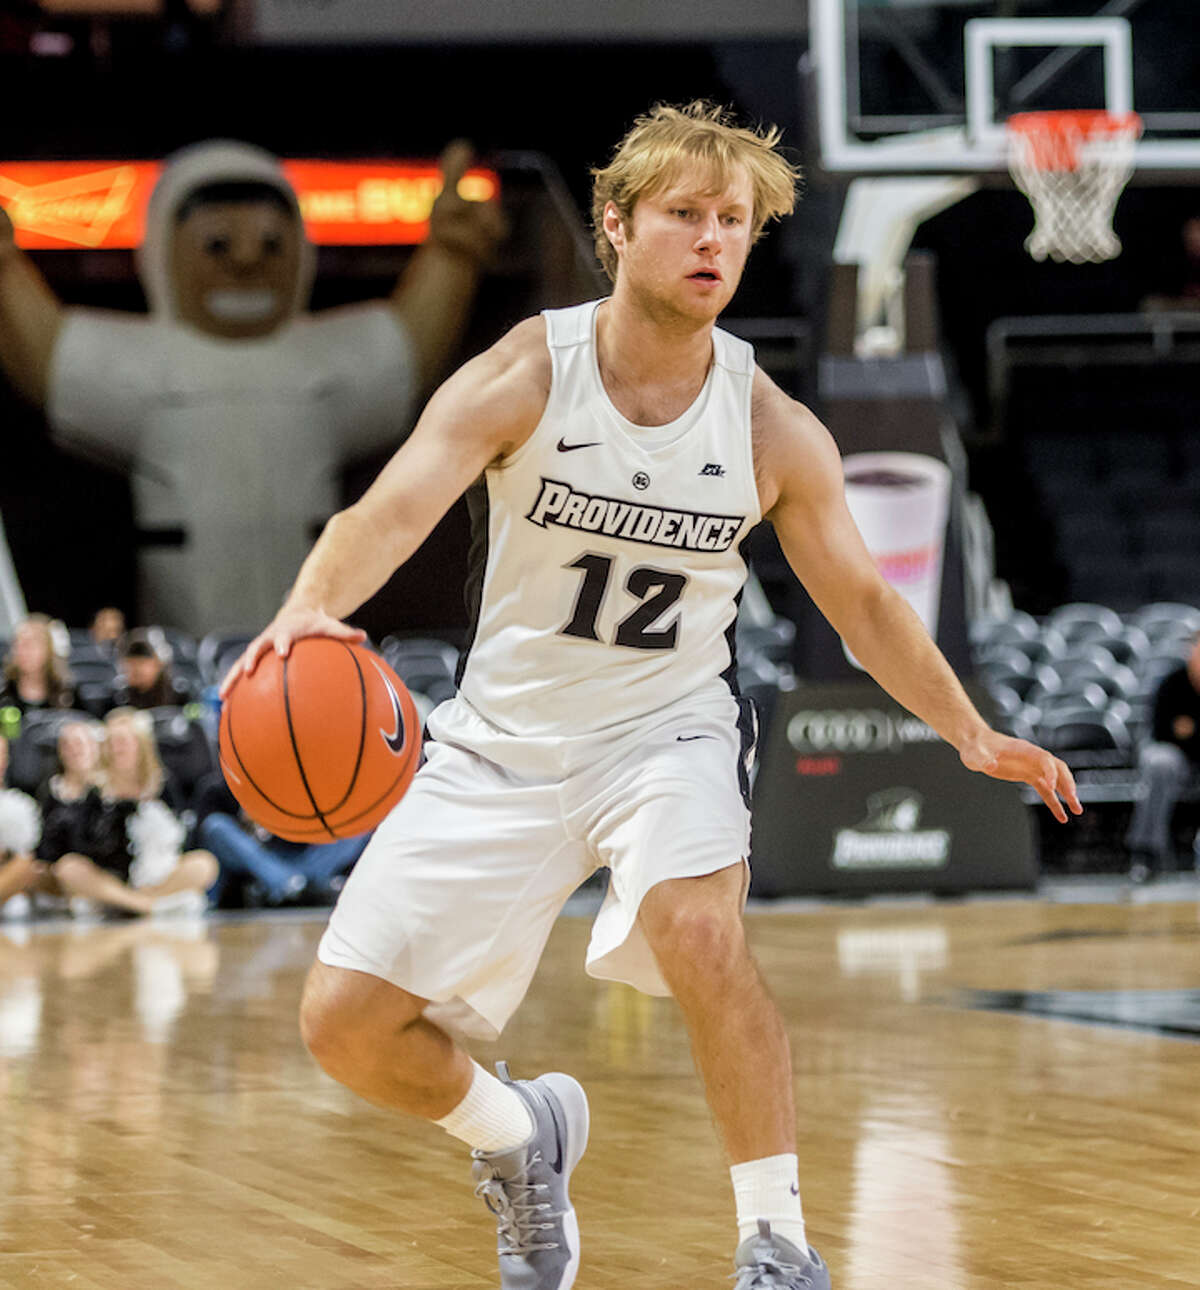 Casey Woodring fired it up on the Friars floor every chance he got.